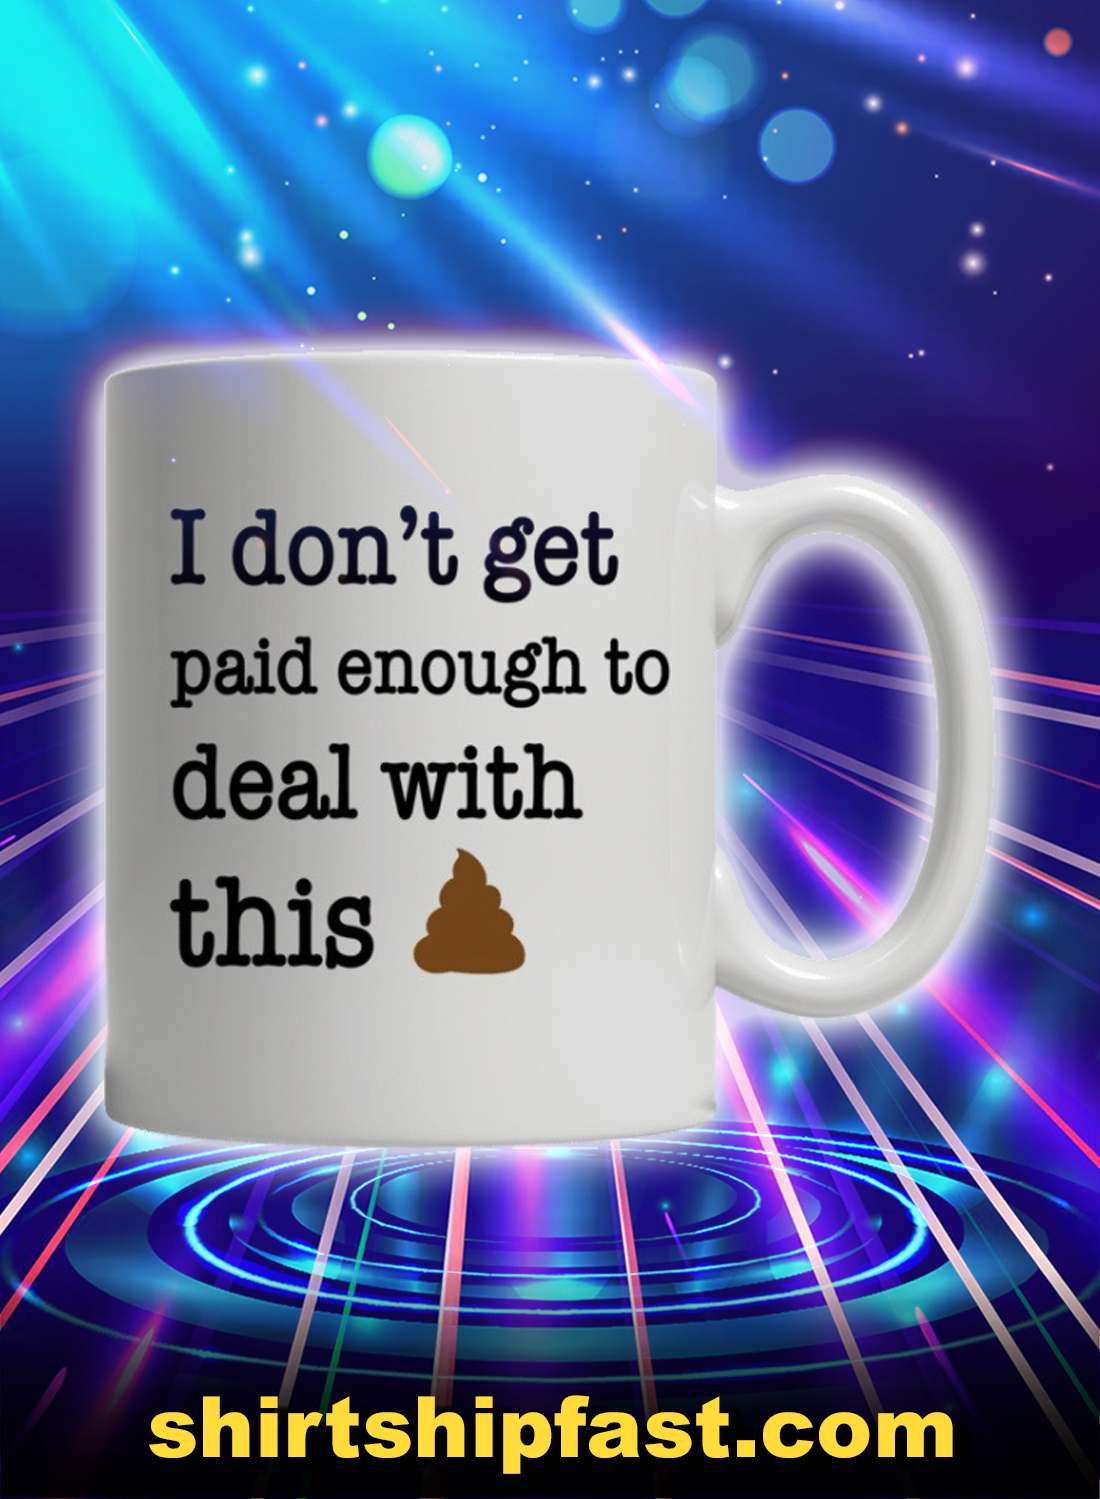 I don't get paid enough to deal with this bullshit mug